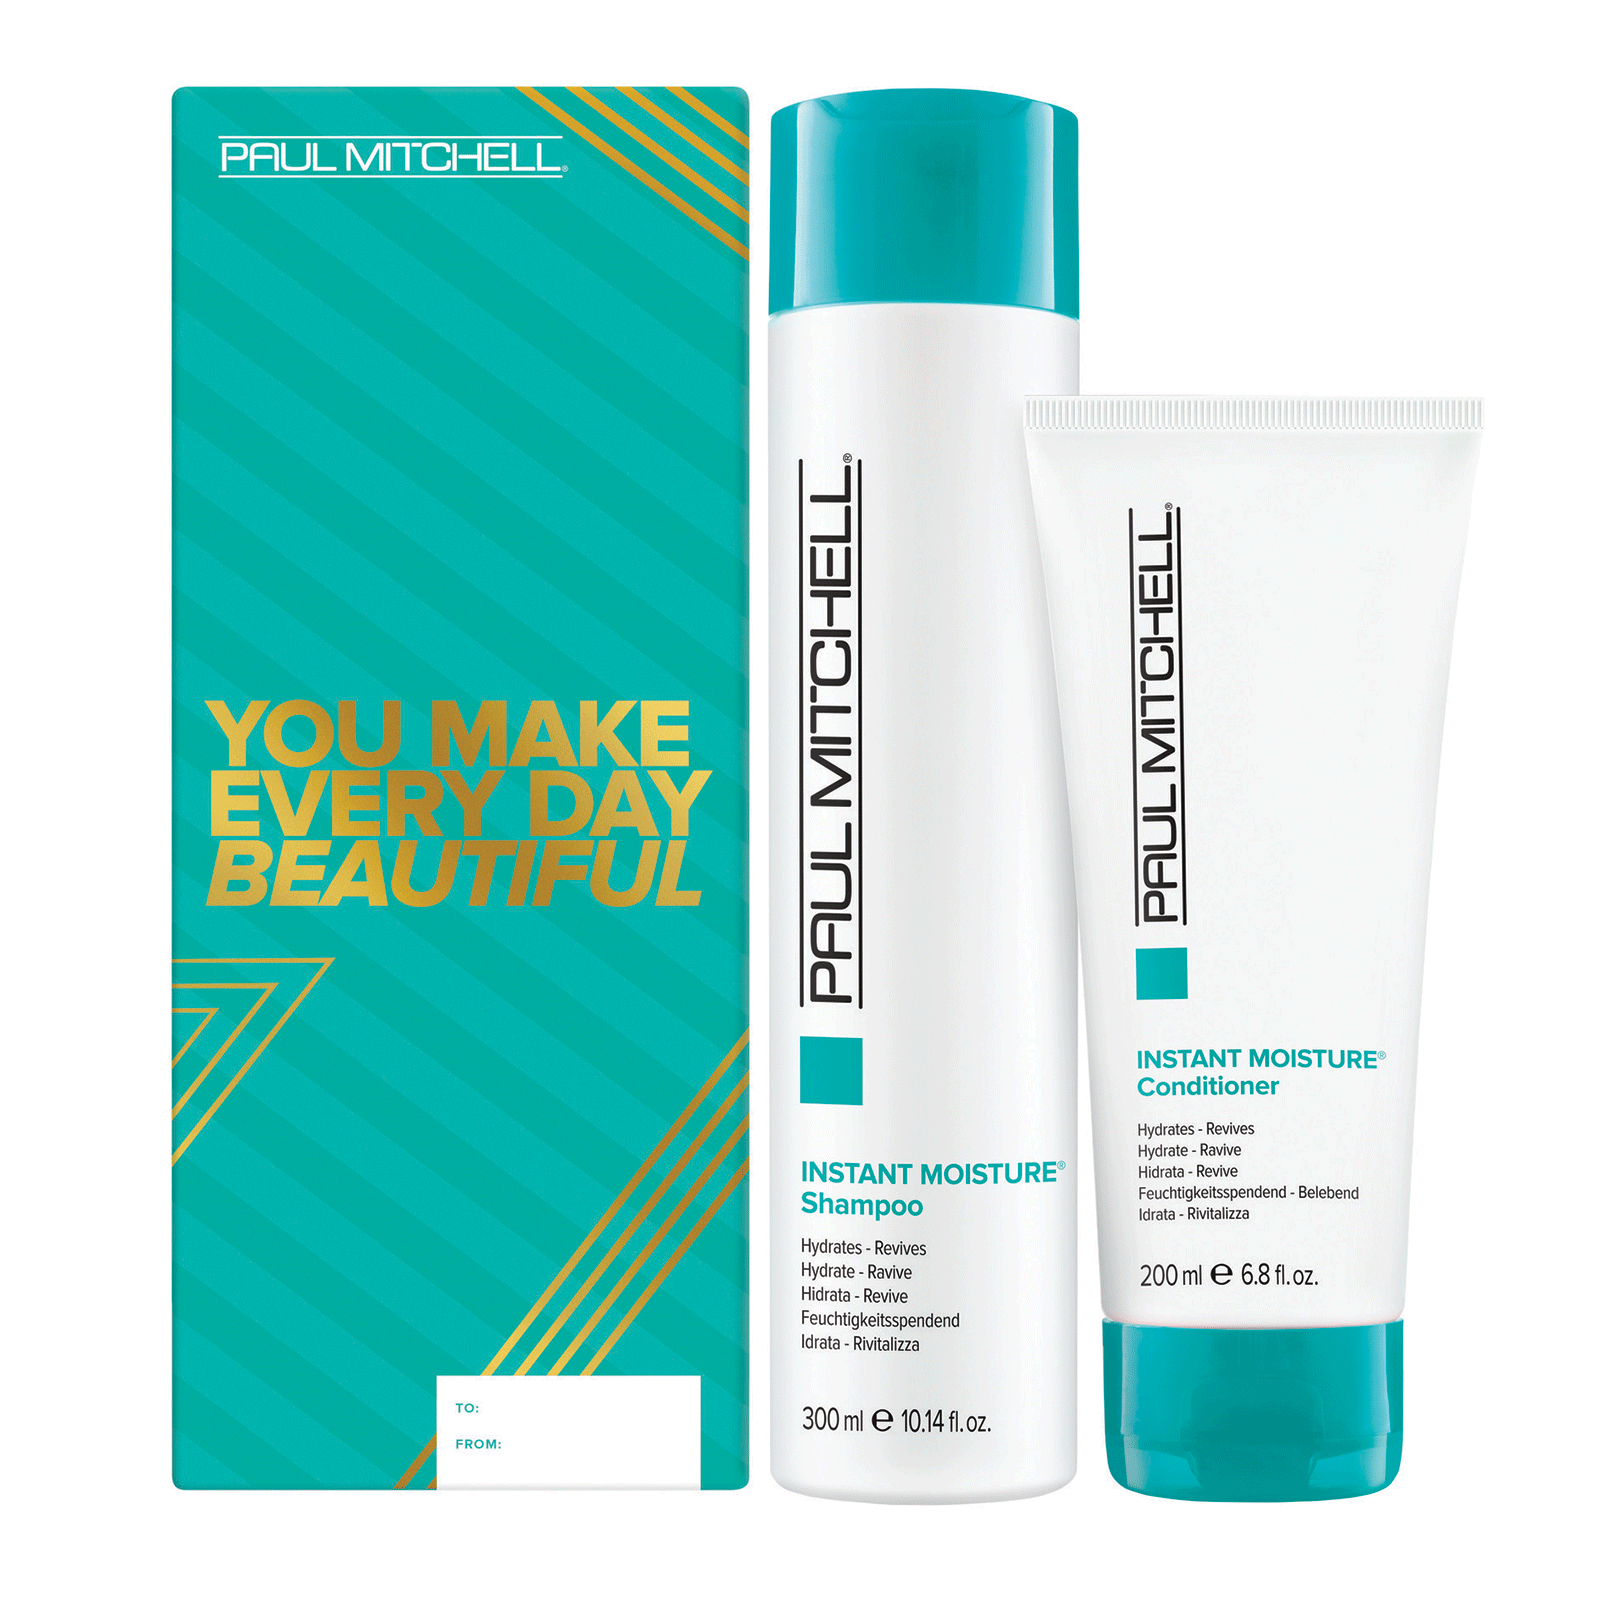 Instant Daily Shampoo, Conditioner Holiday Duo